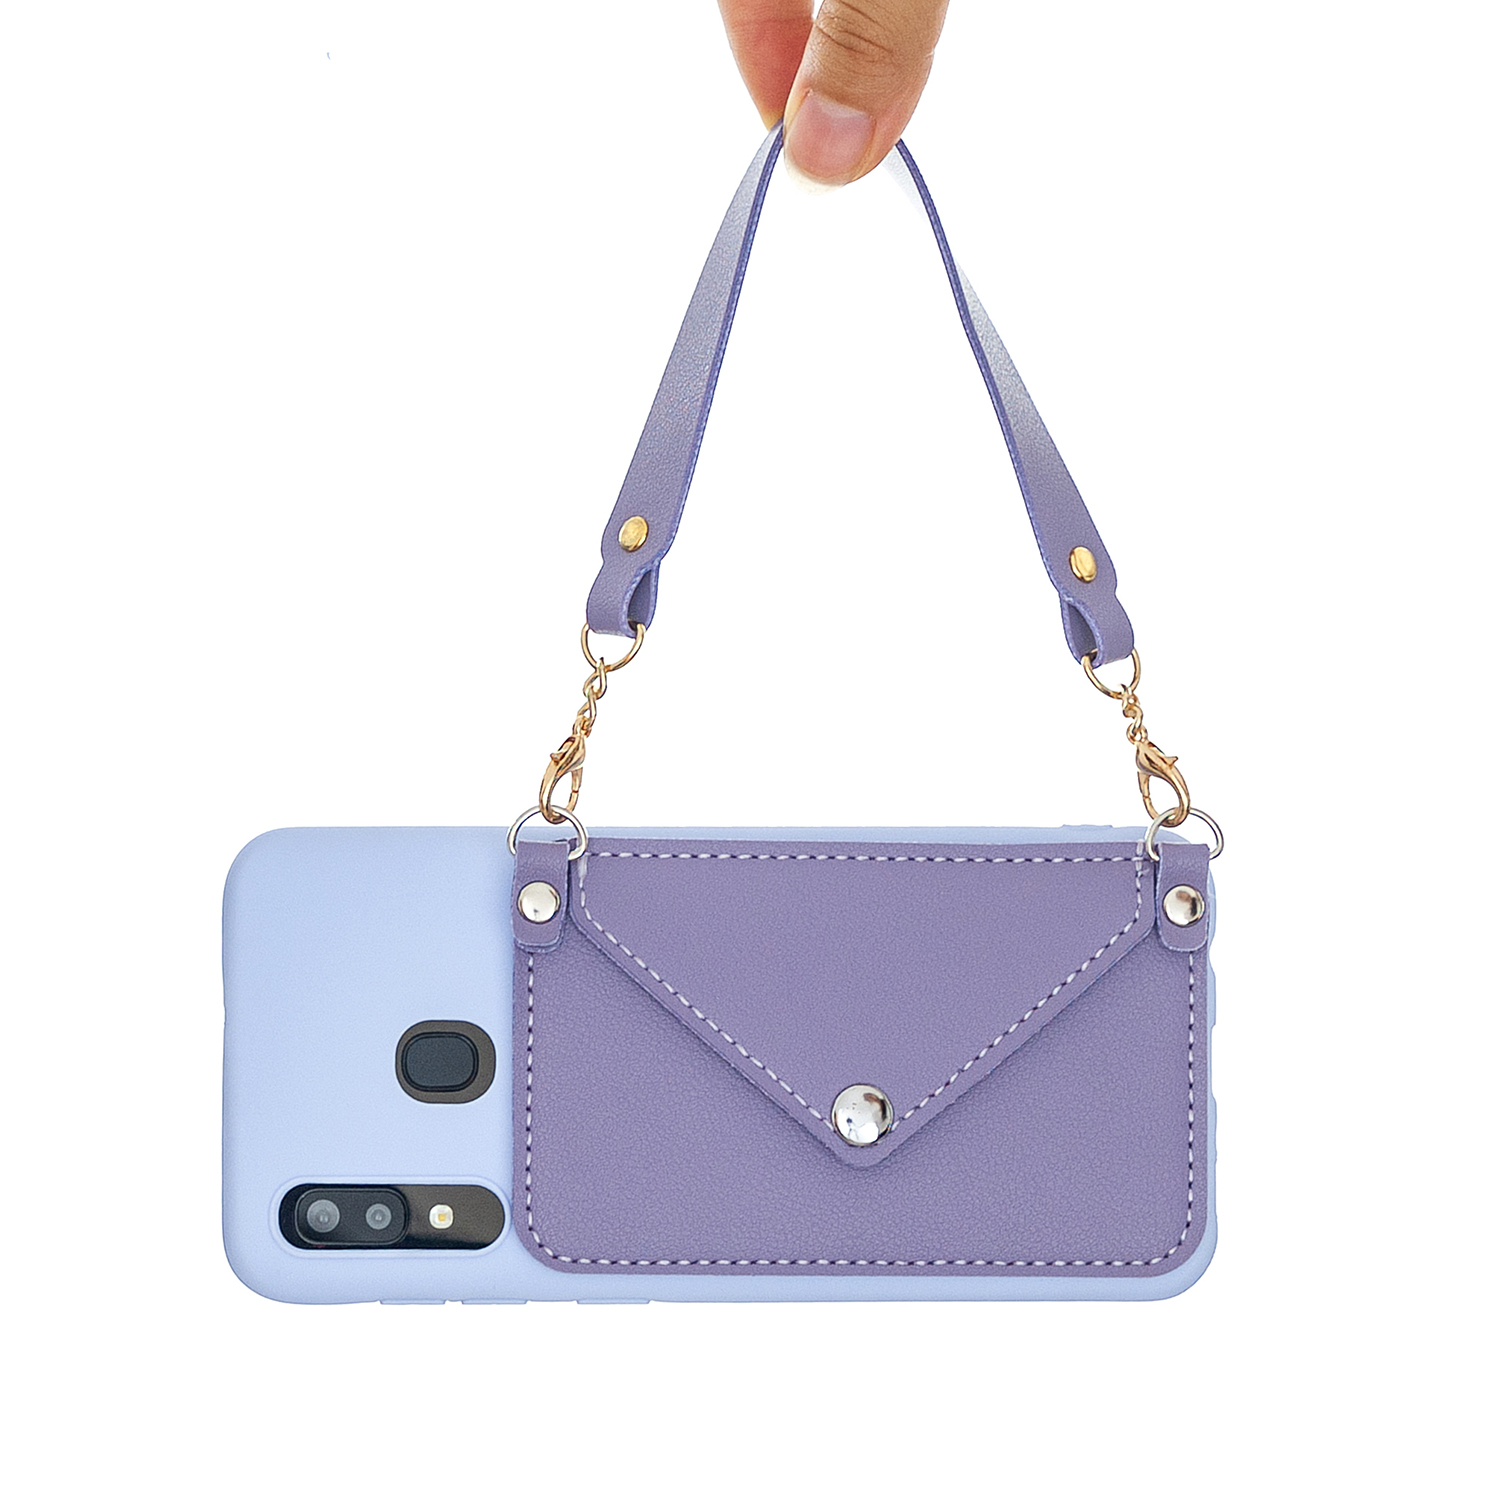 For HUAWEI Y5 2018/2019/Y6 2019/Y7 2019/PSMART Z/Y9 2019 Mobile Phone Cover with Pu Card Holder + Hand Rope + Straddle Rope purple